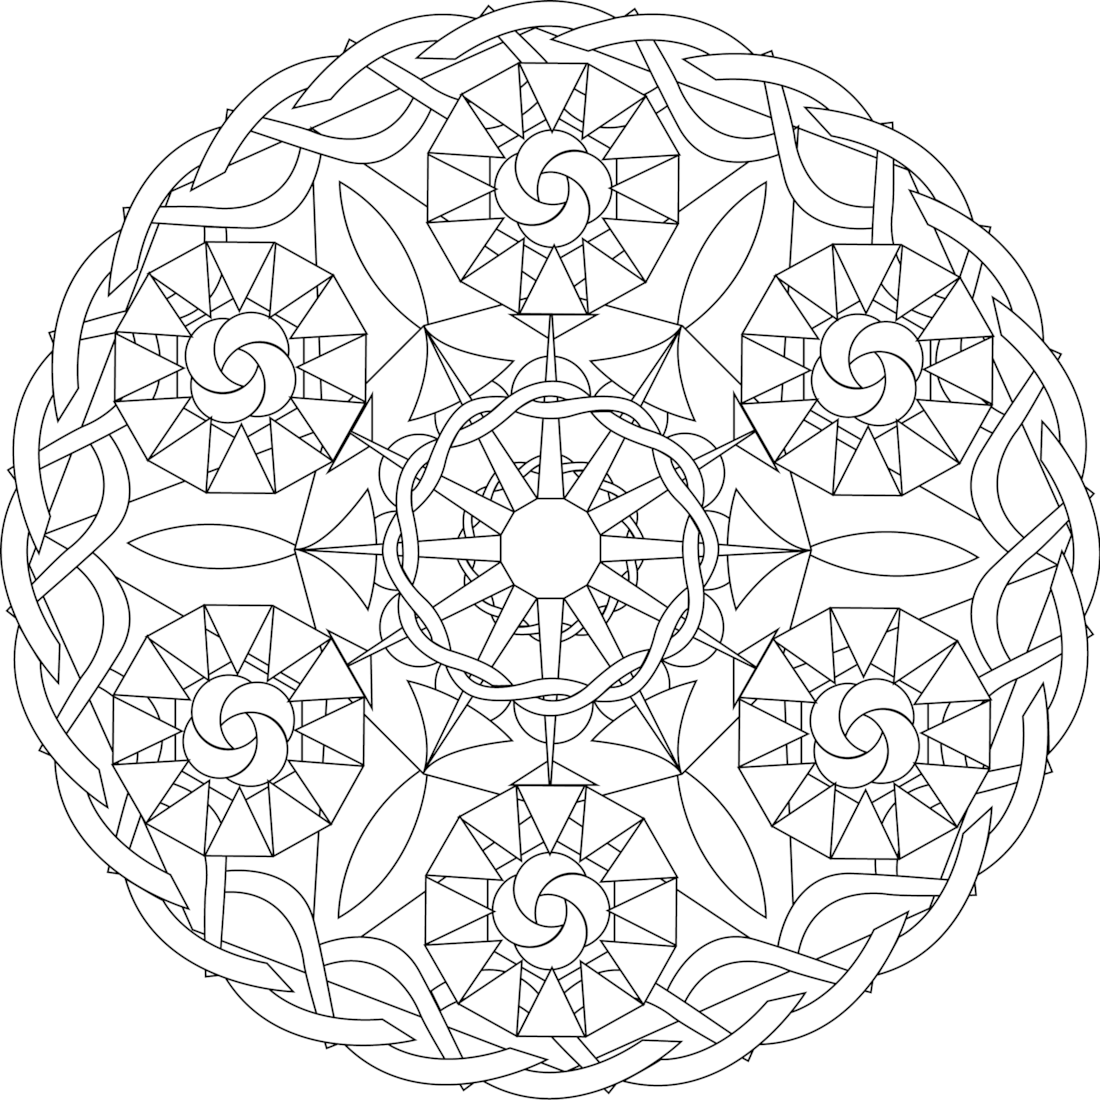 Picture of Six Sisters coloring page